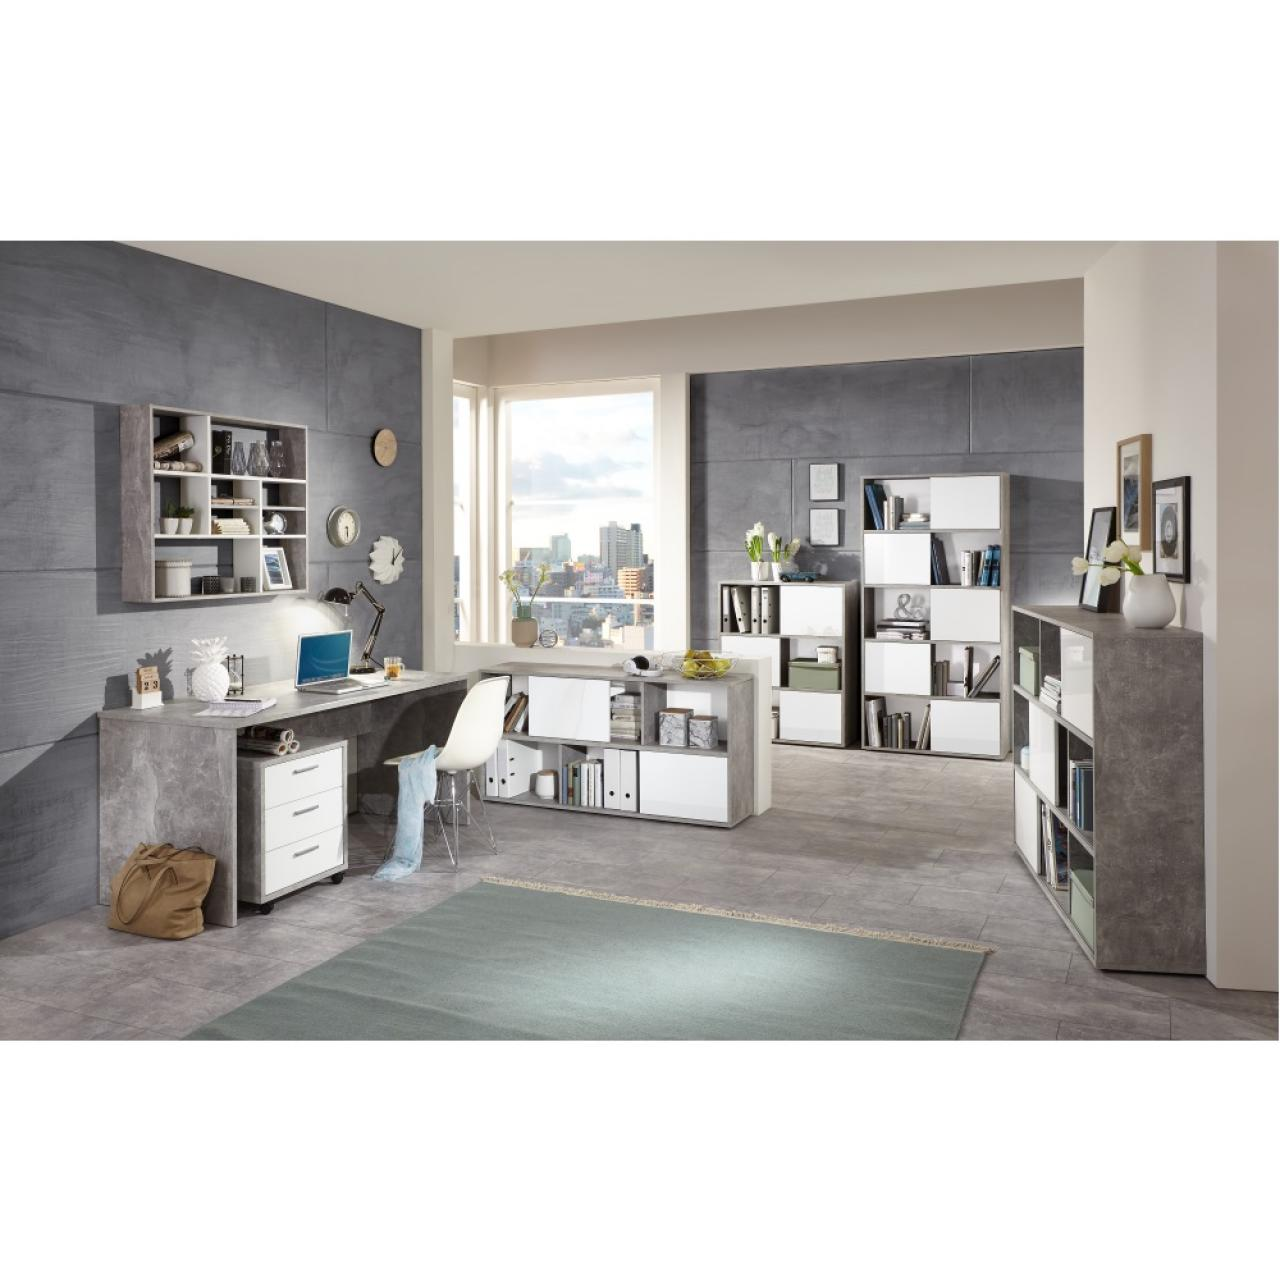 wei hochglanz regal great medium size of kleines badezimmer regal weiss regal weiss hochglanz. Black Bedroom Furniture Sets. Home Design Ideas